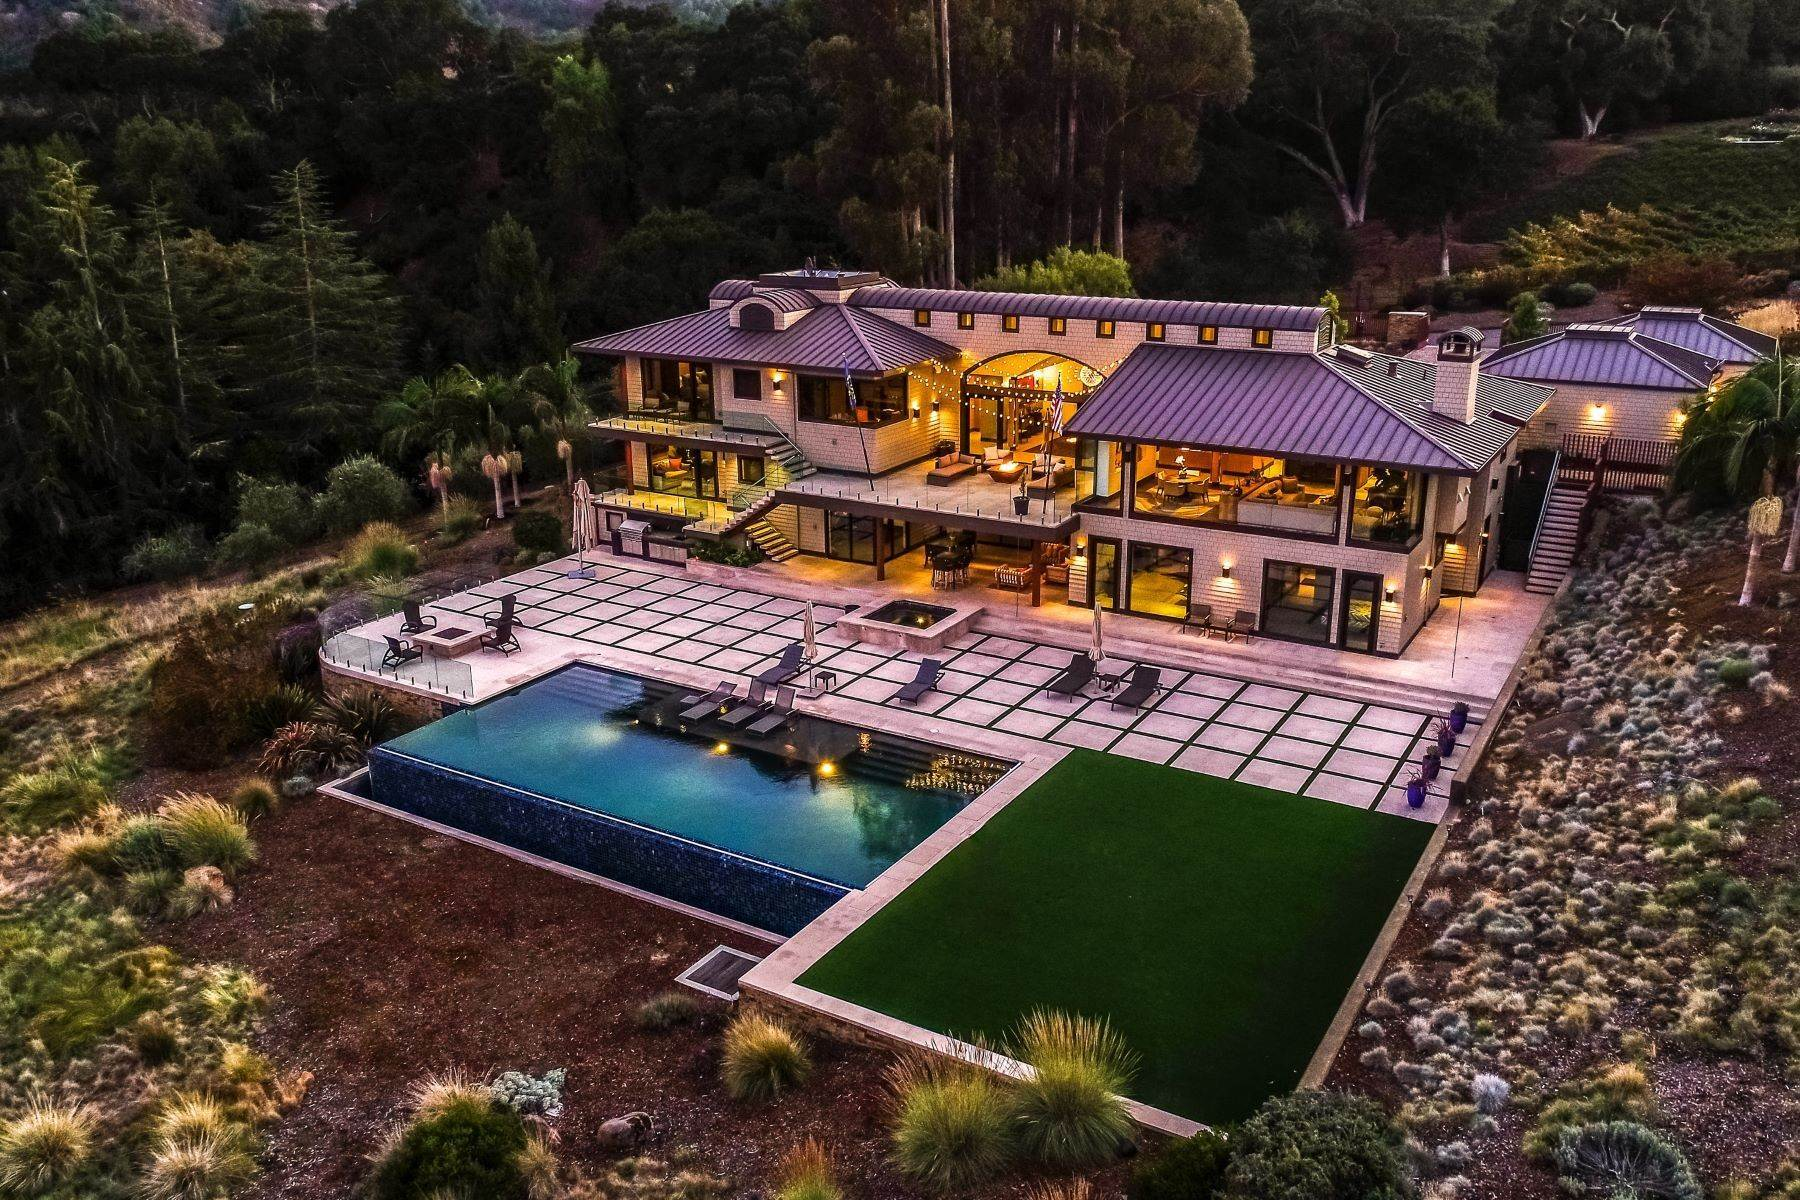 Property for Sale at Modern Vineyard Estate 26301 Silent Hills Lane Los Altos Hills, California 94022 United States